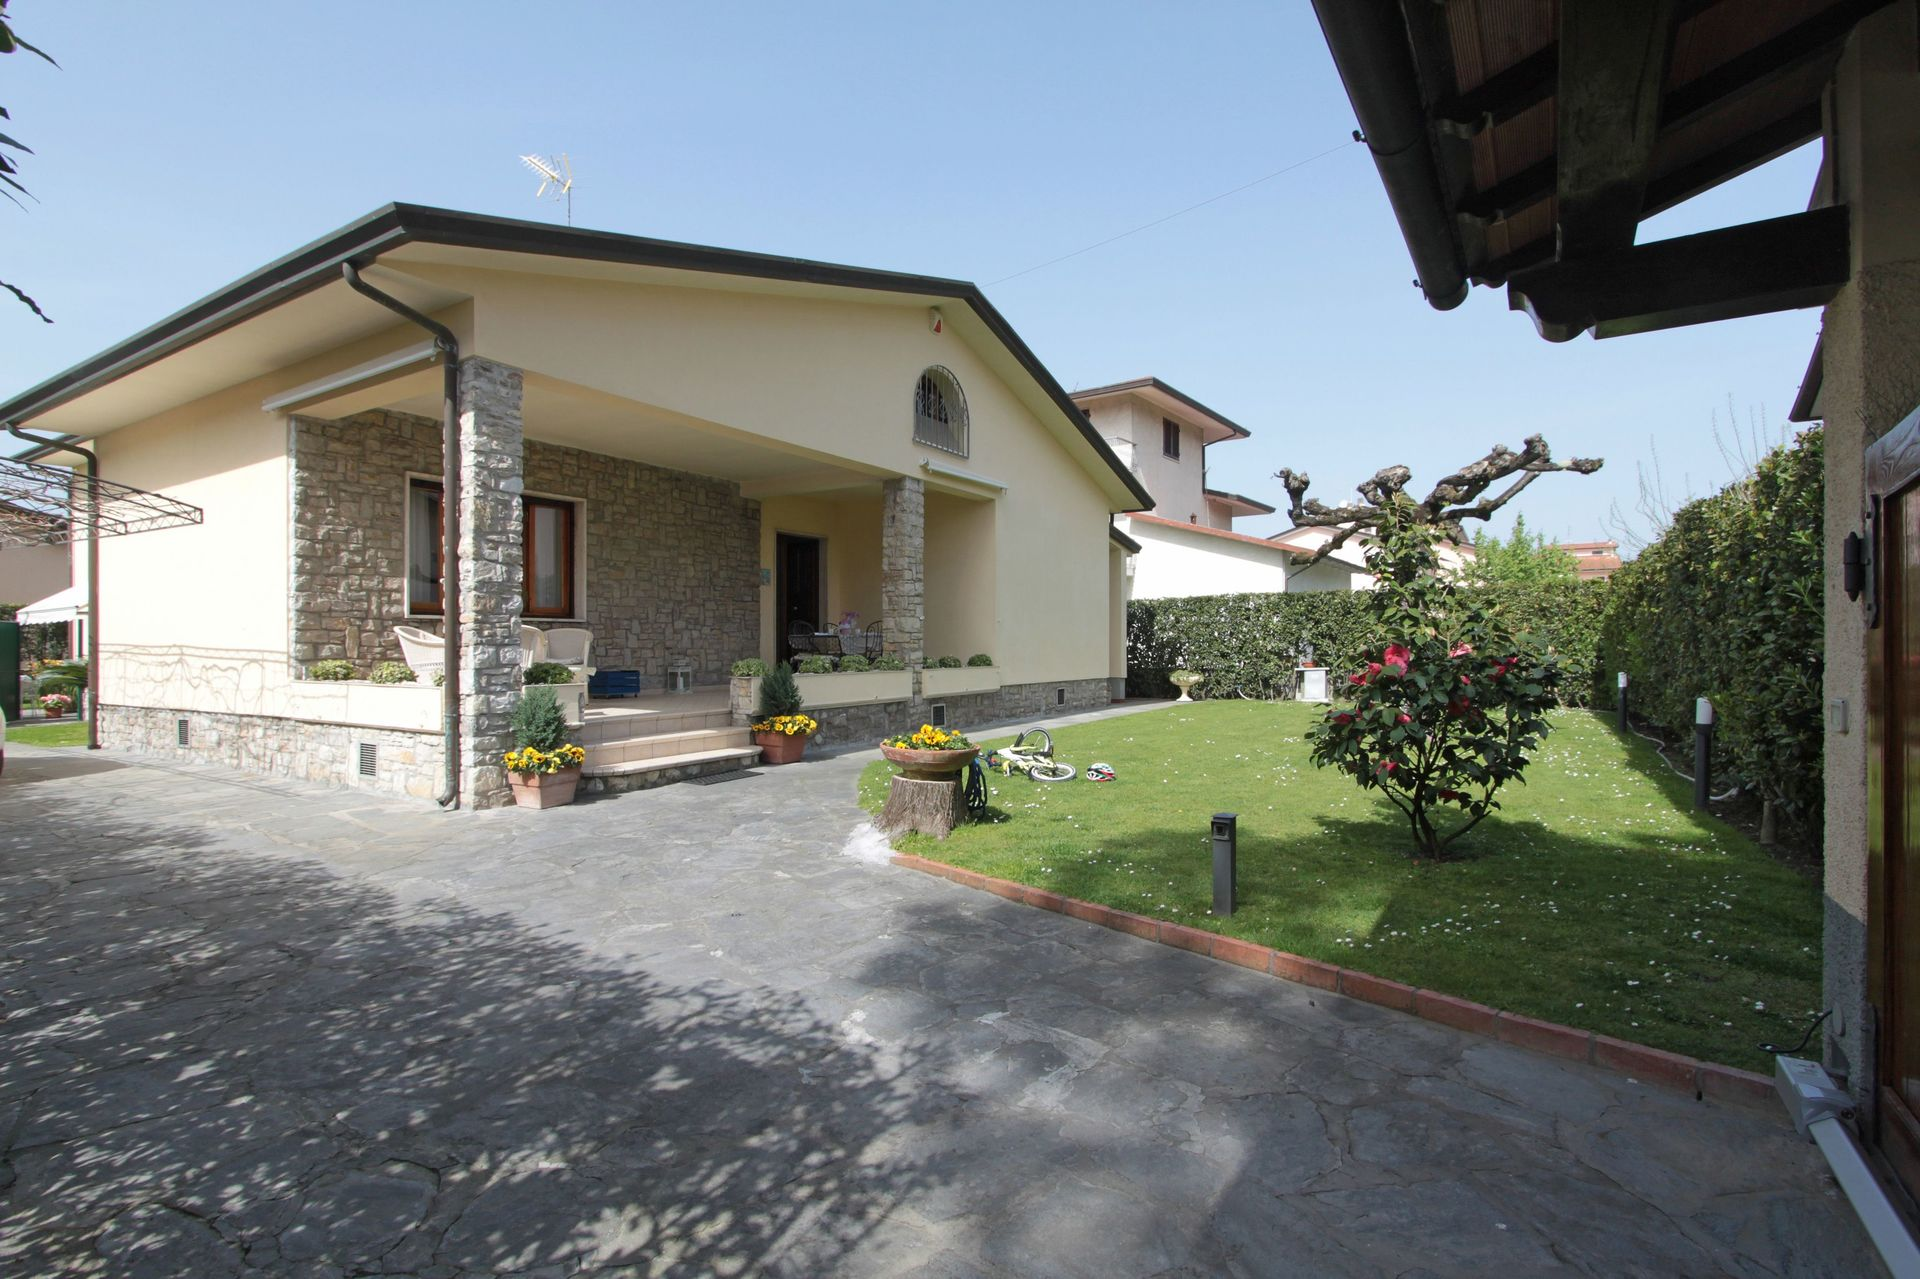 Italian Case Forte Dei Marmi villa giovanna: vacation rental that sleeps 6 people in 4